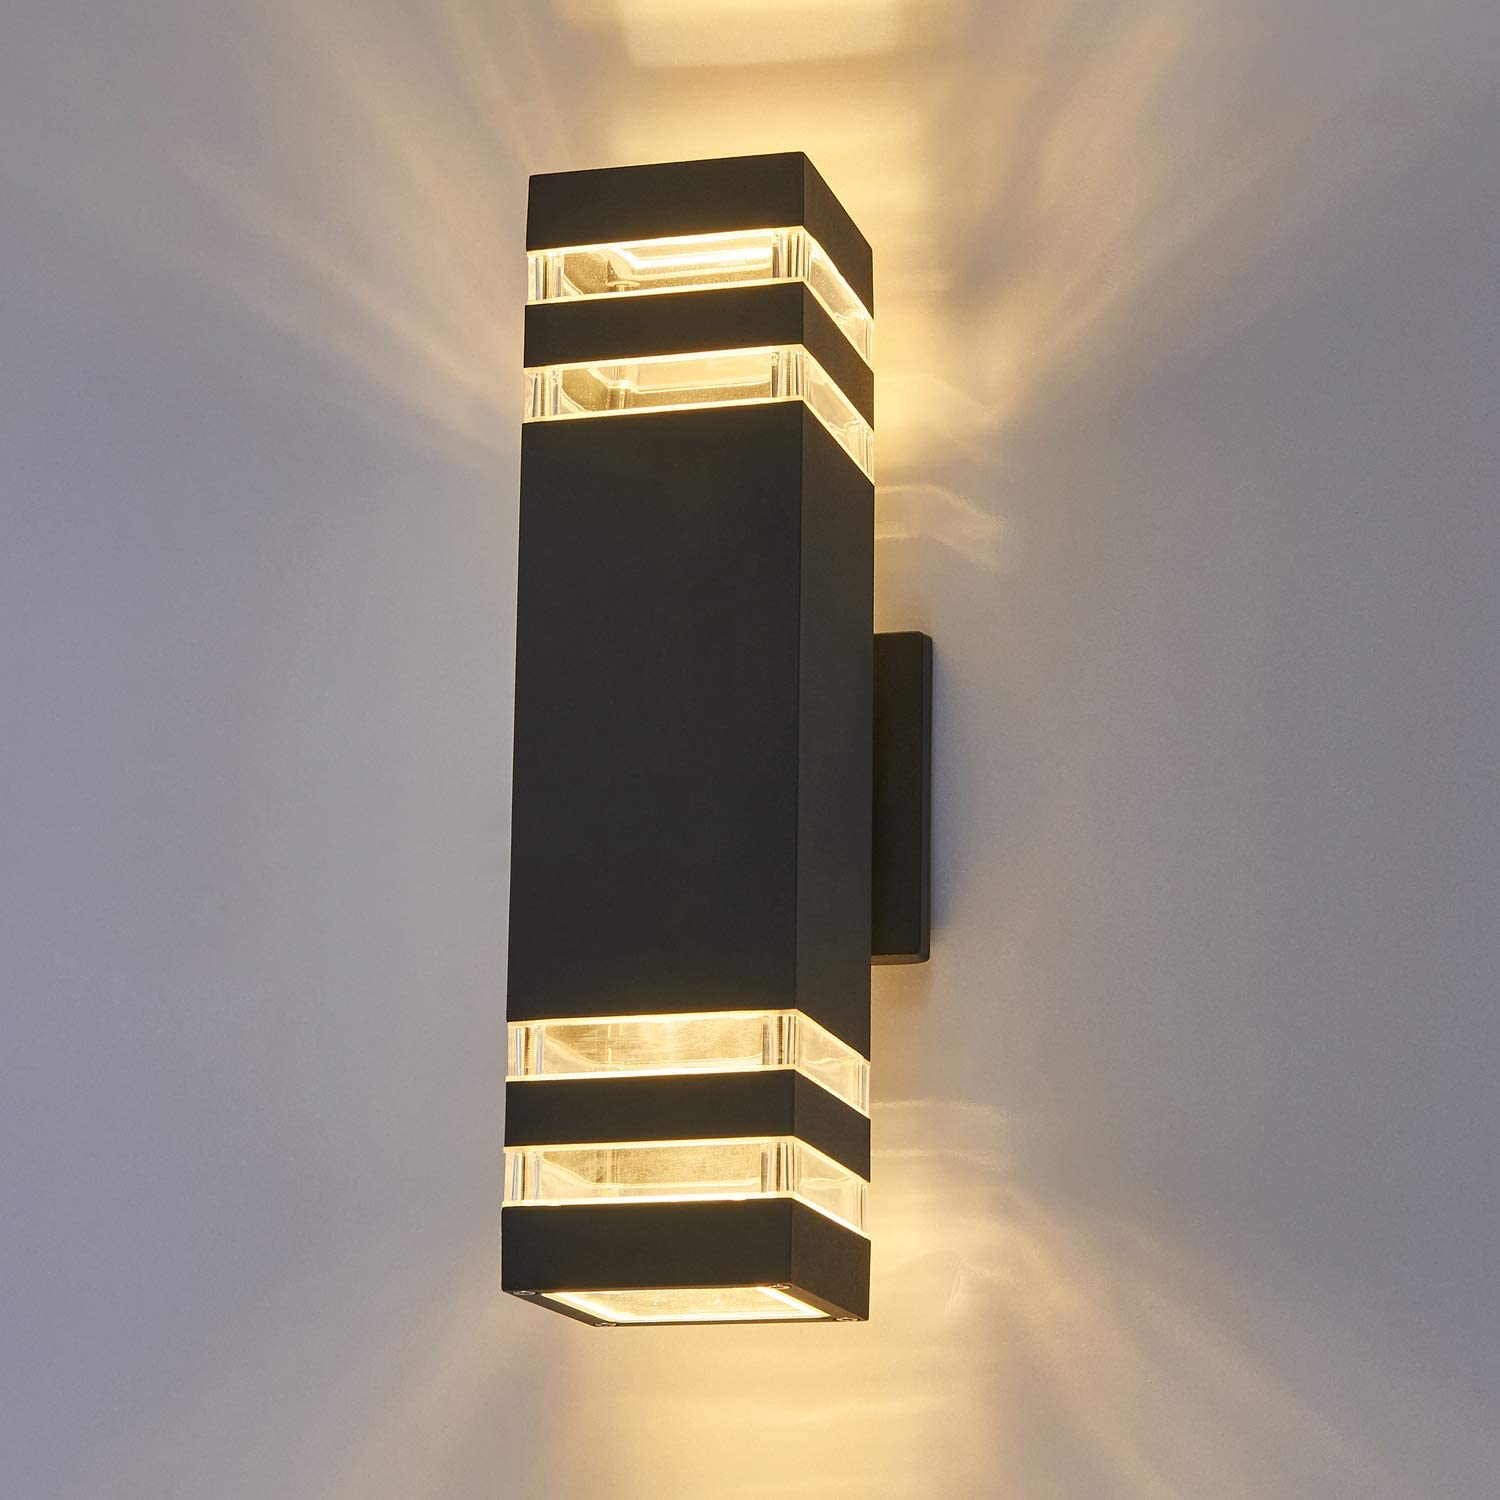 LED Ranking TOP20 Outdoor Waterproof Wall Light fixtures Attention brand Warm 8W White 3000K